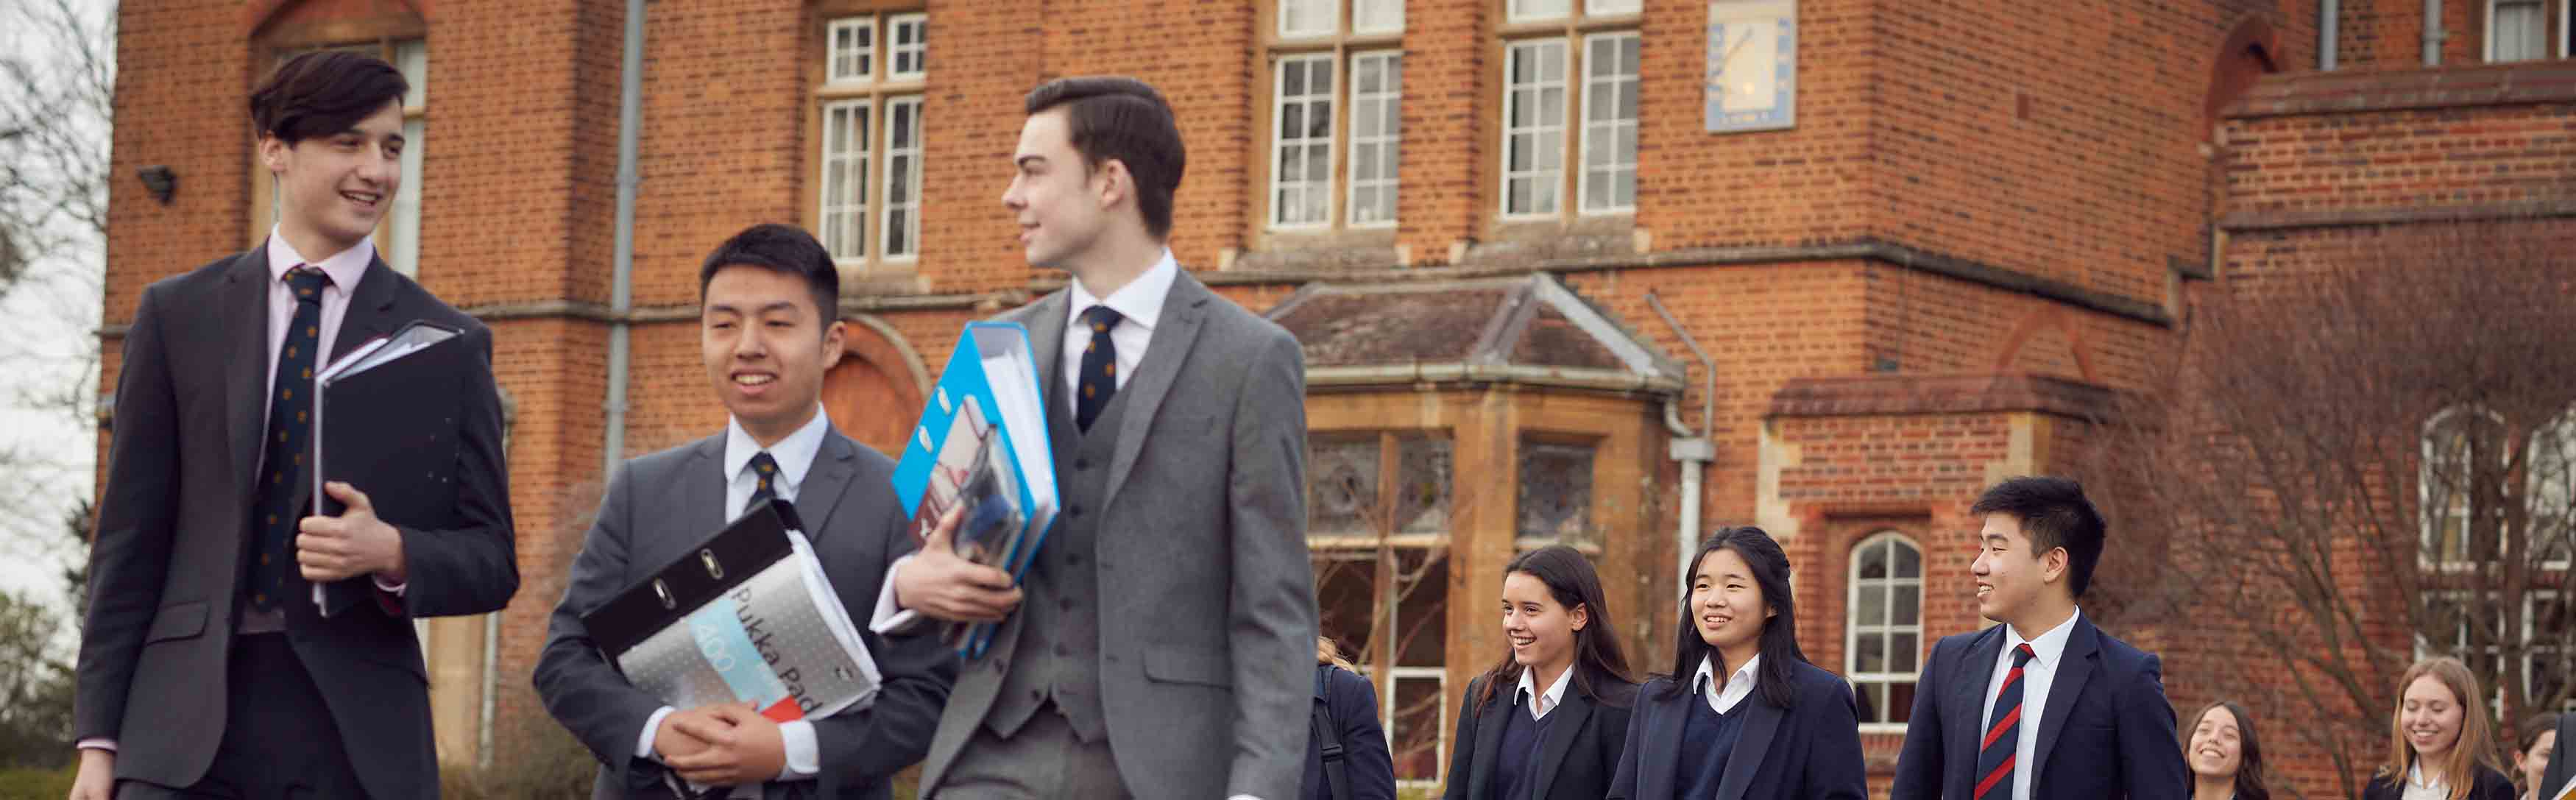 St Edward's School, Oxford, Oxfordshire, England | Dickinson | British Boarding School Consulting